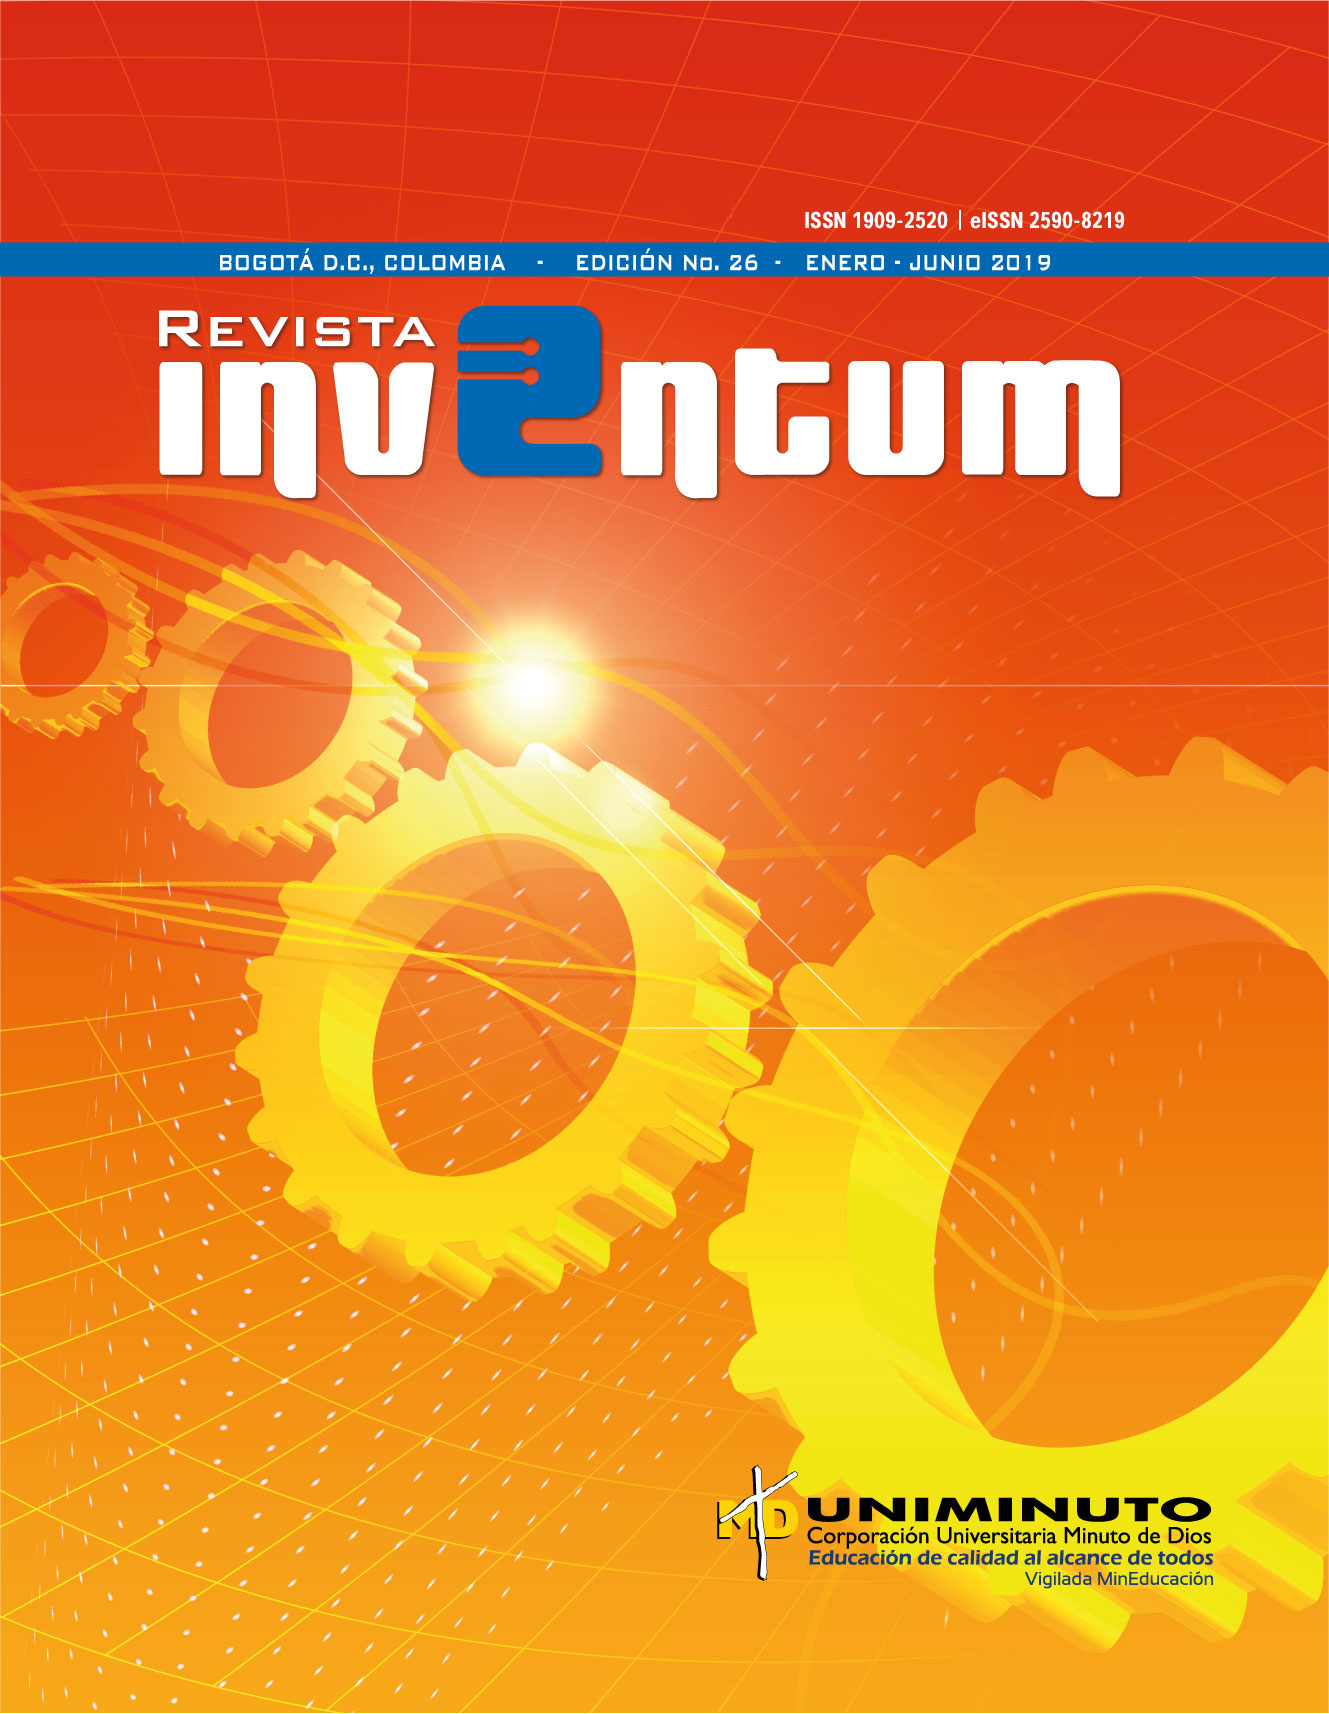 https://revistas.uniminuto.edu/public/journals/2/cover_issue_183_es_ES.jpg